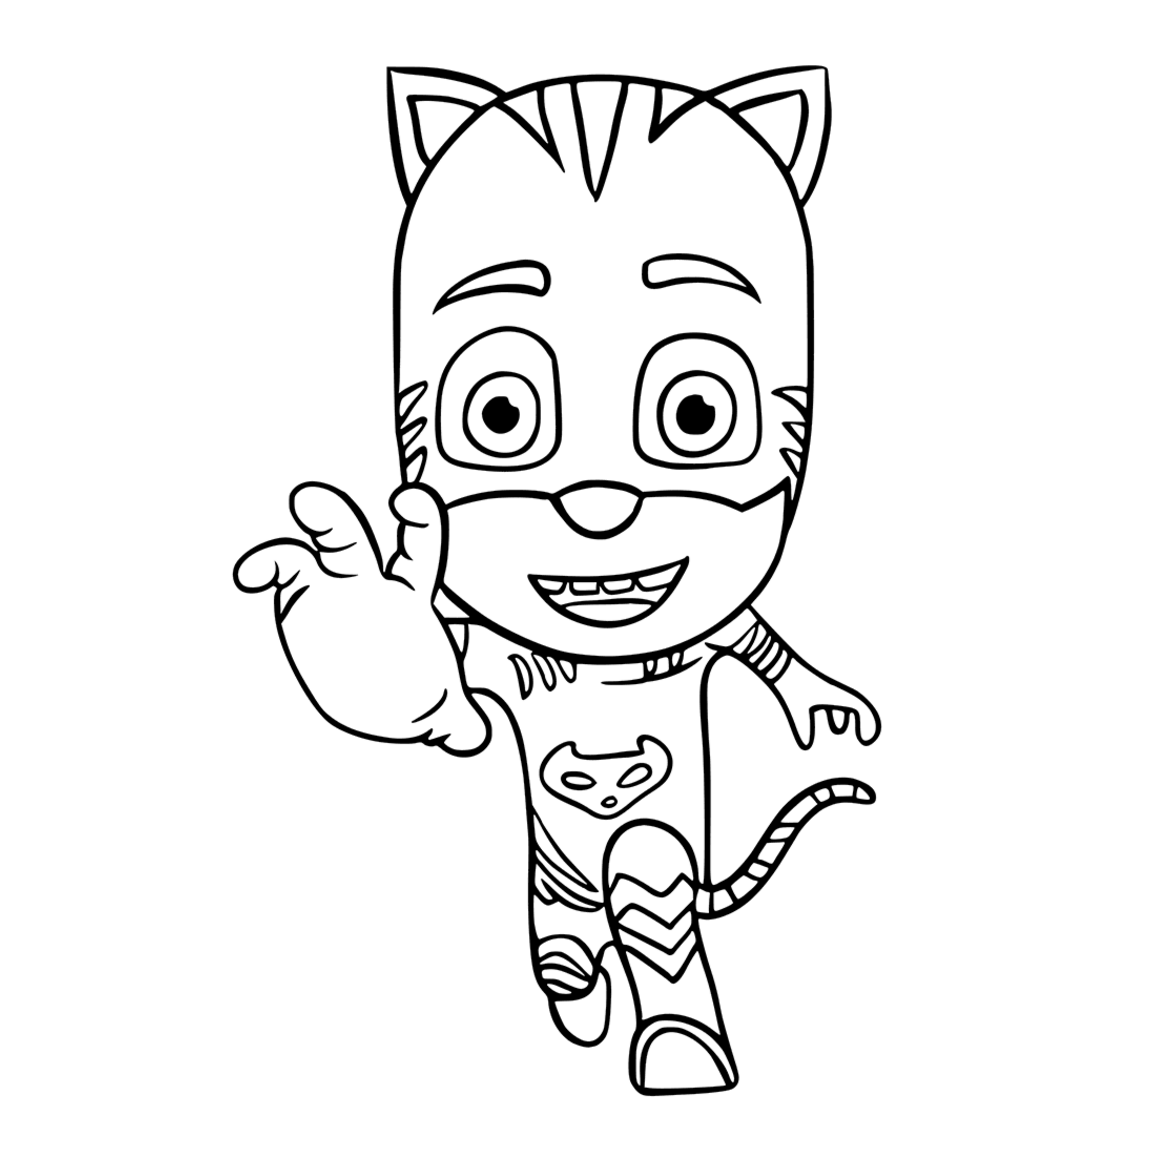 pj masks coloring pages to download and print for free pj masks